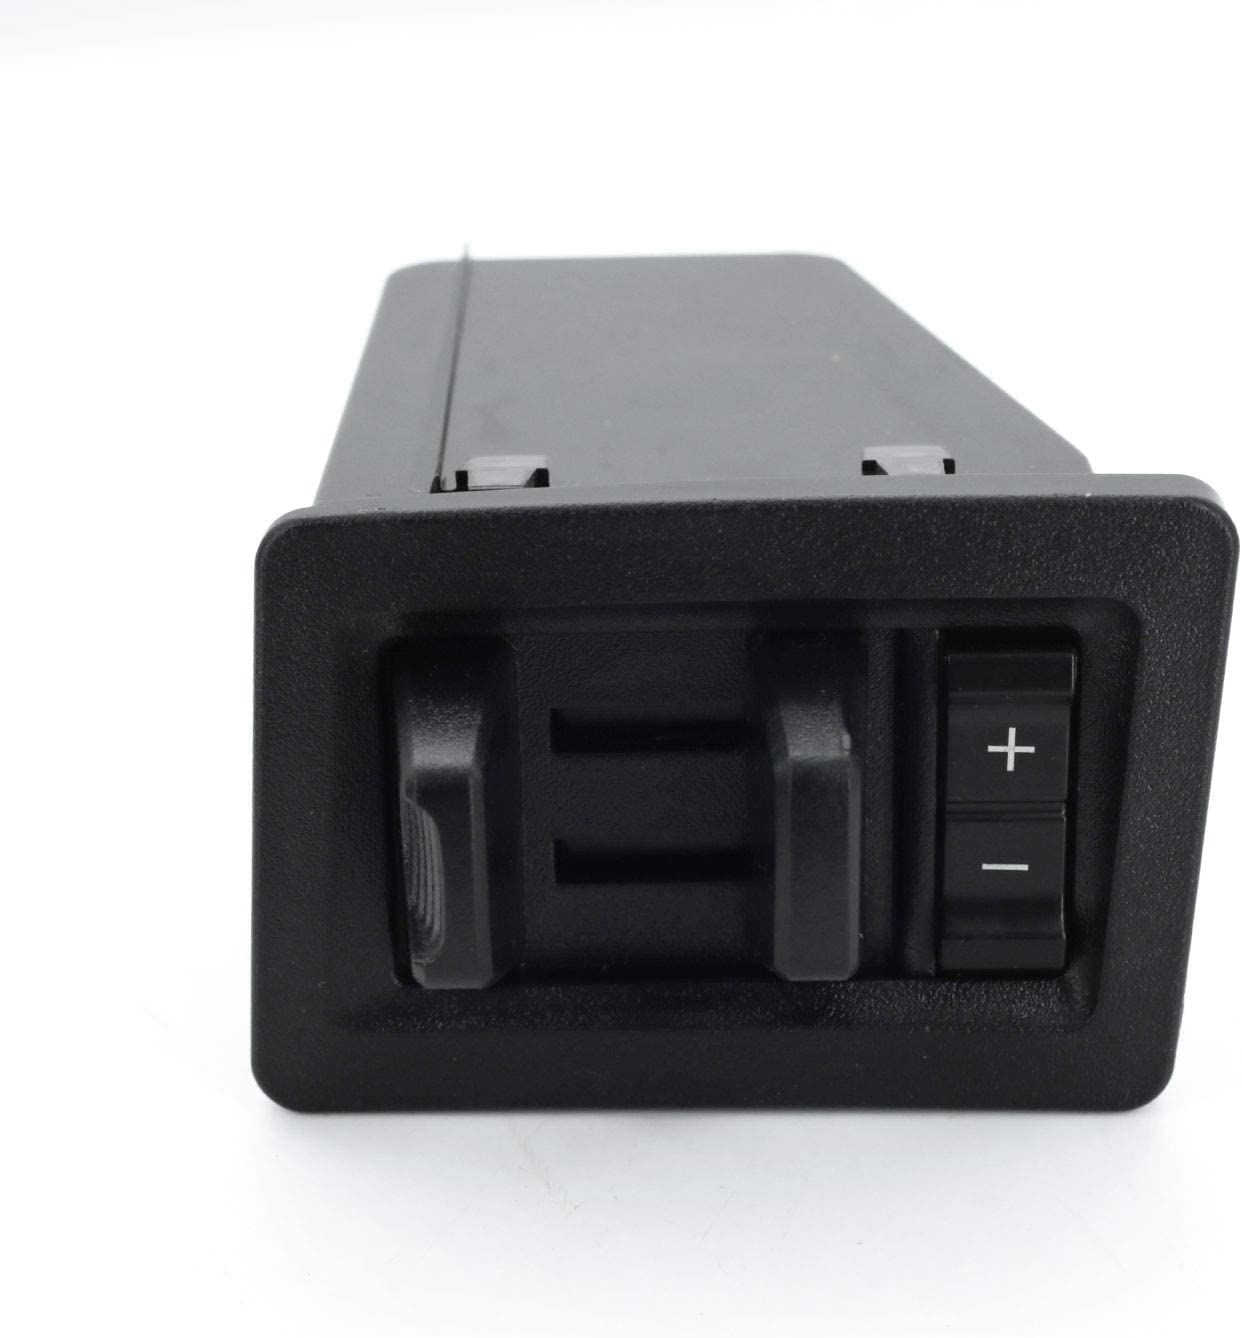 TBC Module Switch Compatible with 2015-2020 Fo-rd F150 Replace# GL3Z-2C006-CB EXAUTOPONE JL3Z-2C006-AA Trailer Brake Controller